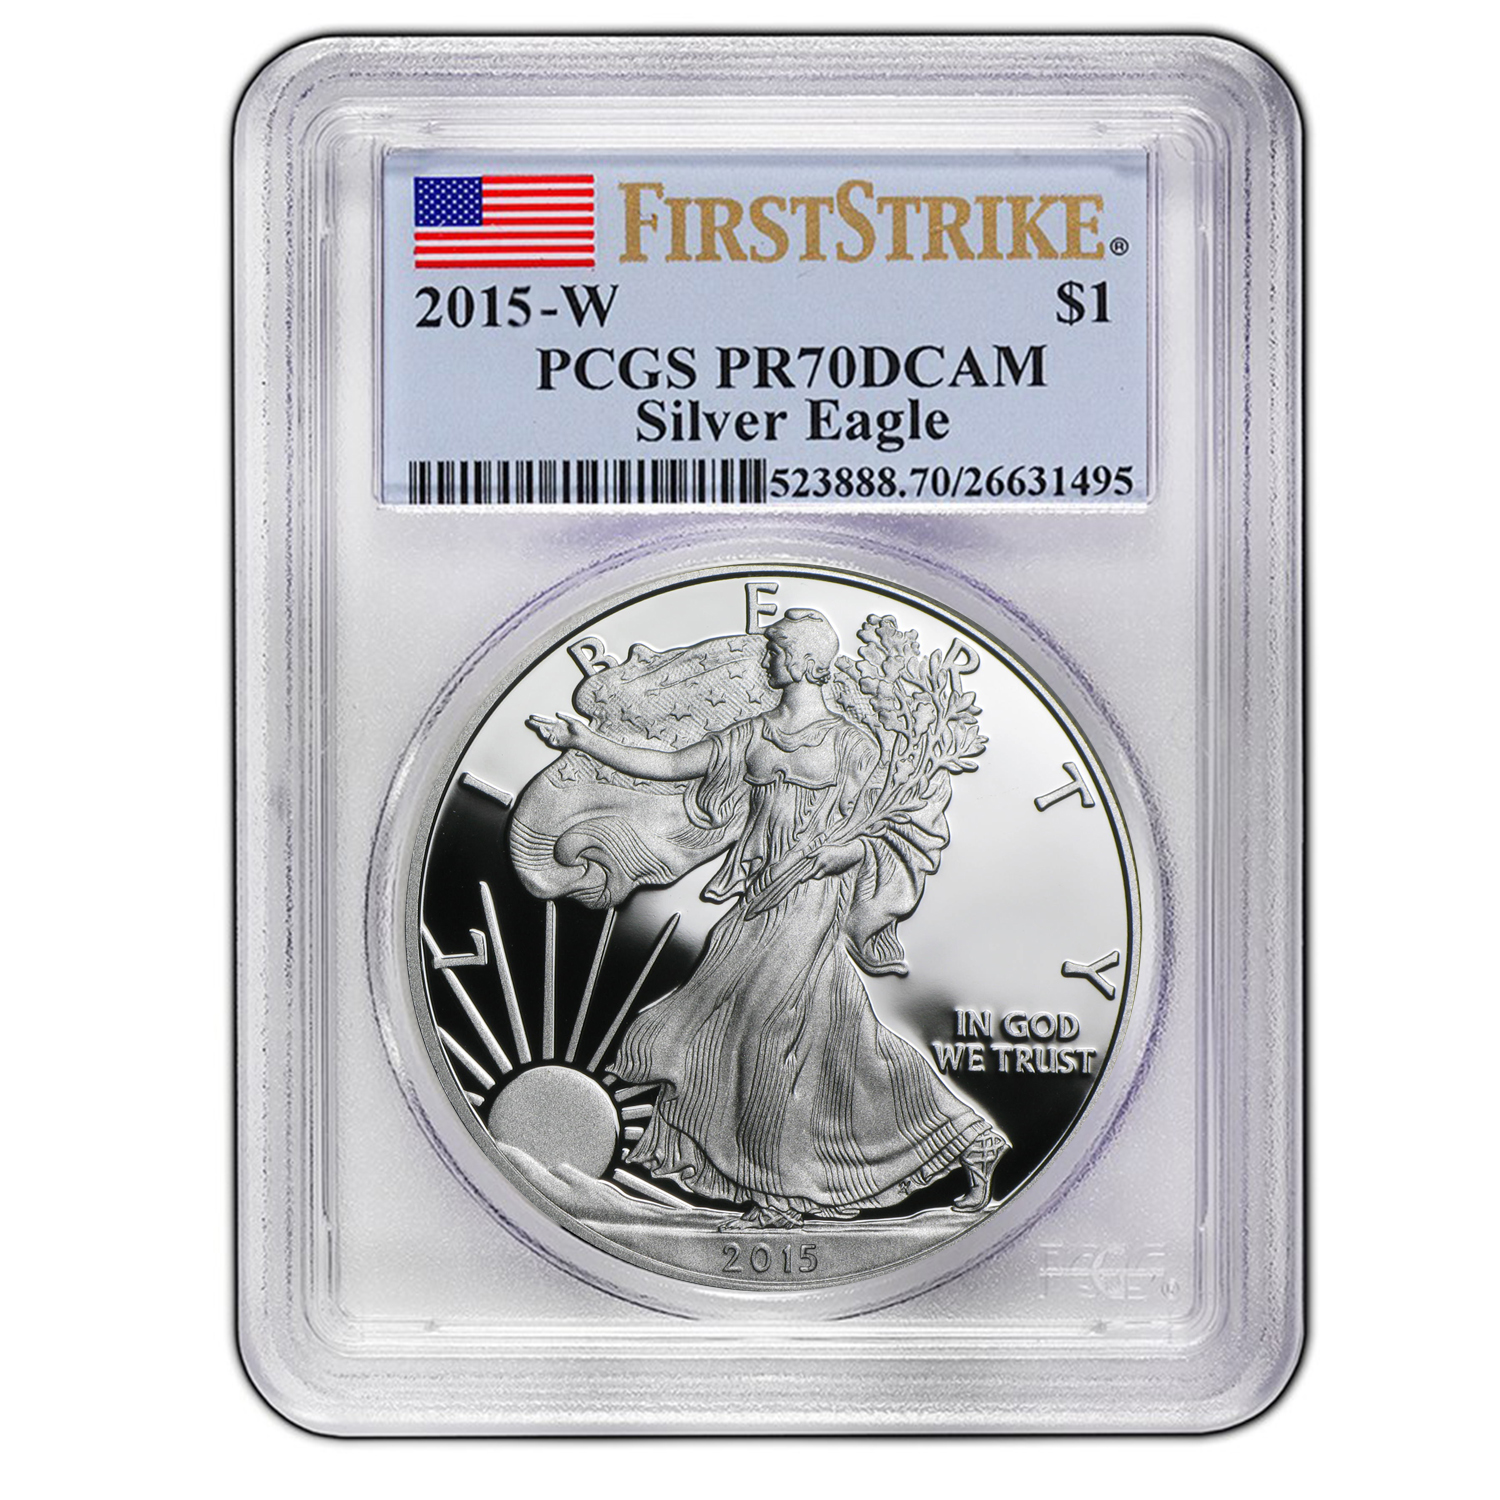 2015 W Proof Silver American Eagle Pr 70 Pcgs First